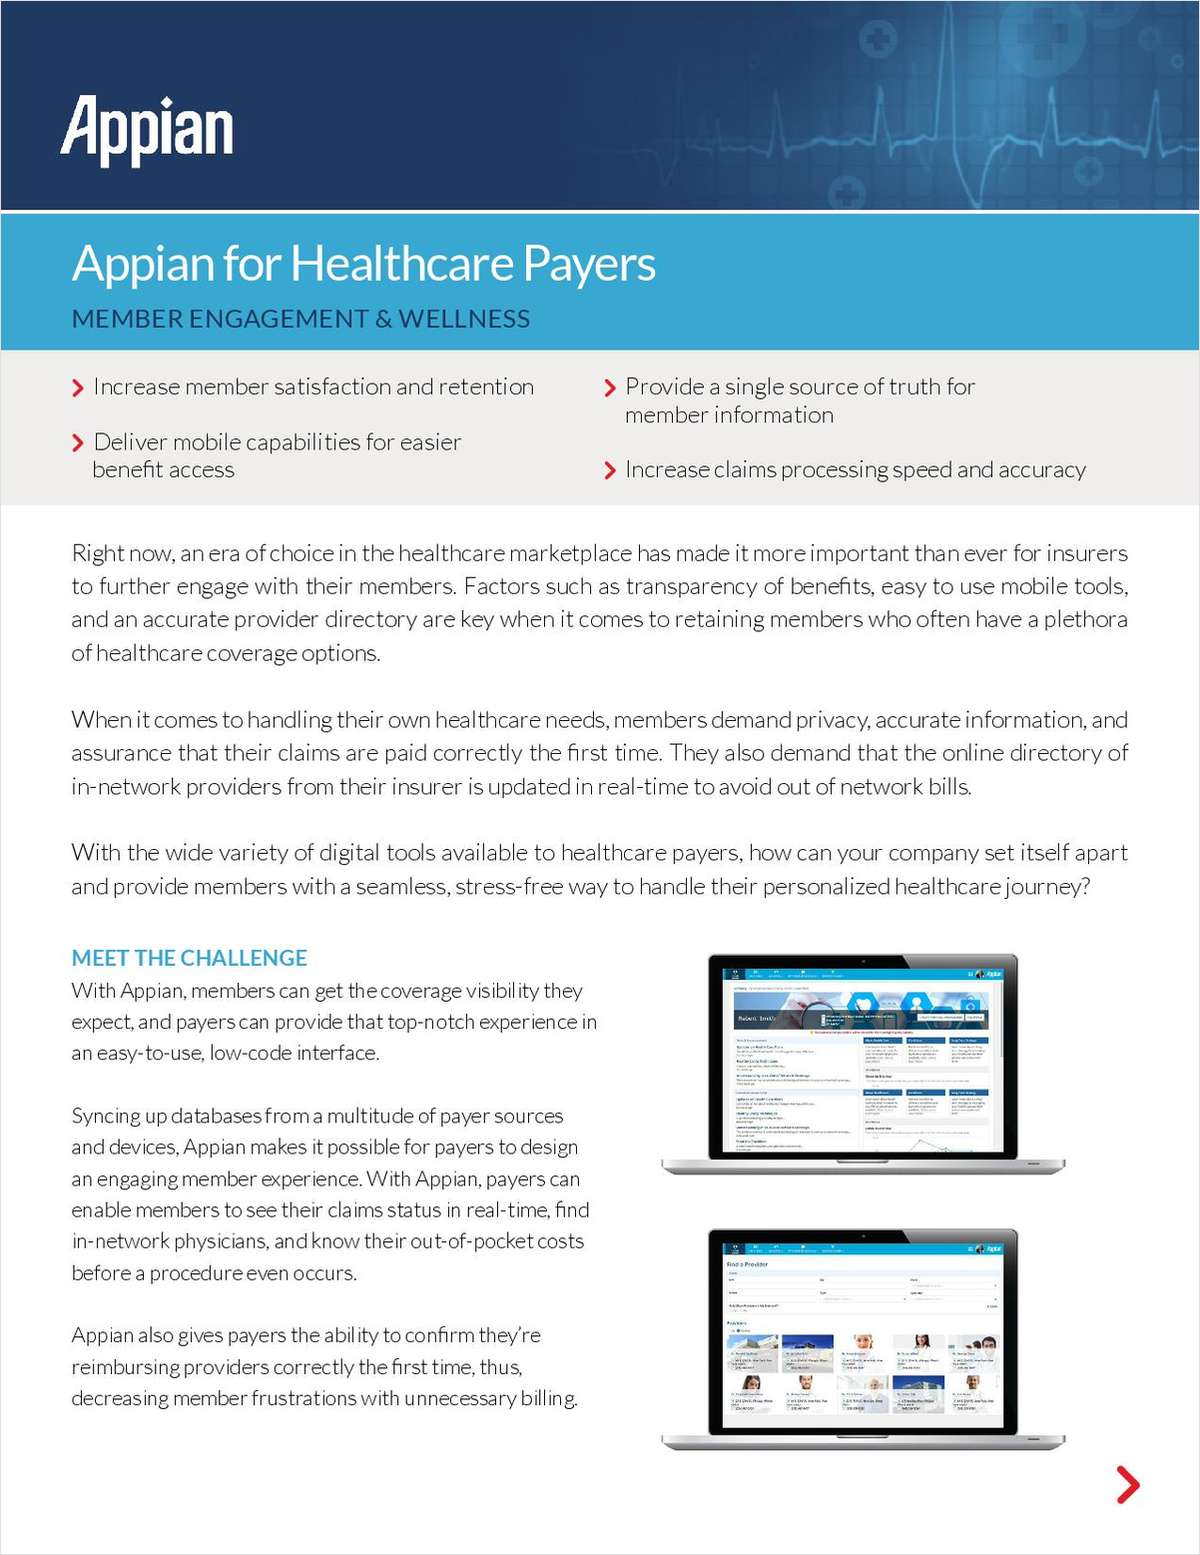 Appian for Healthcare Payers: Member Engagement and Wellness